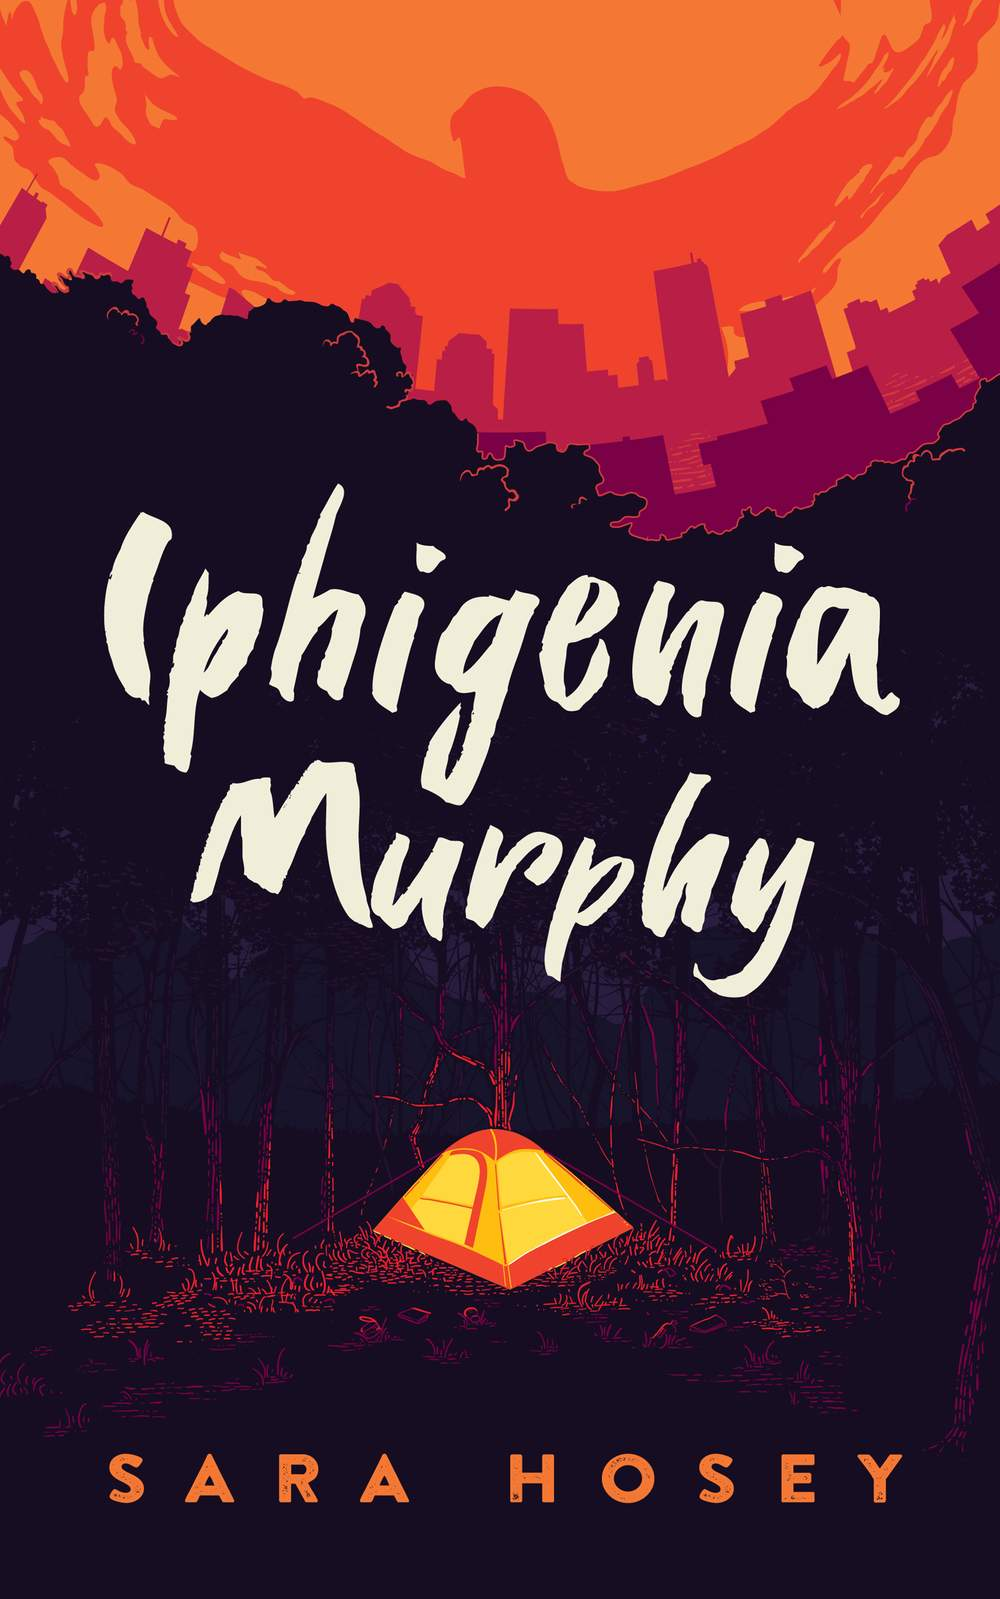 iphigenia-murphy-sara-full-cover